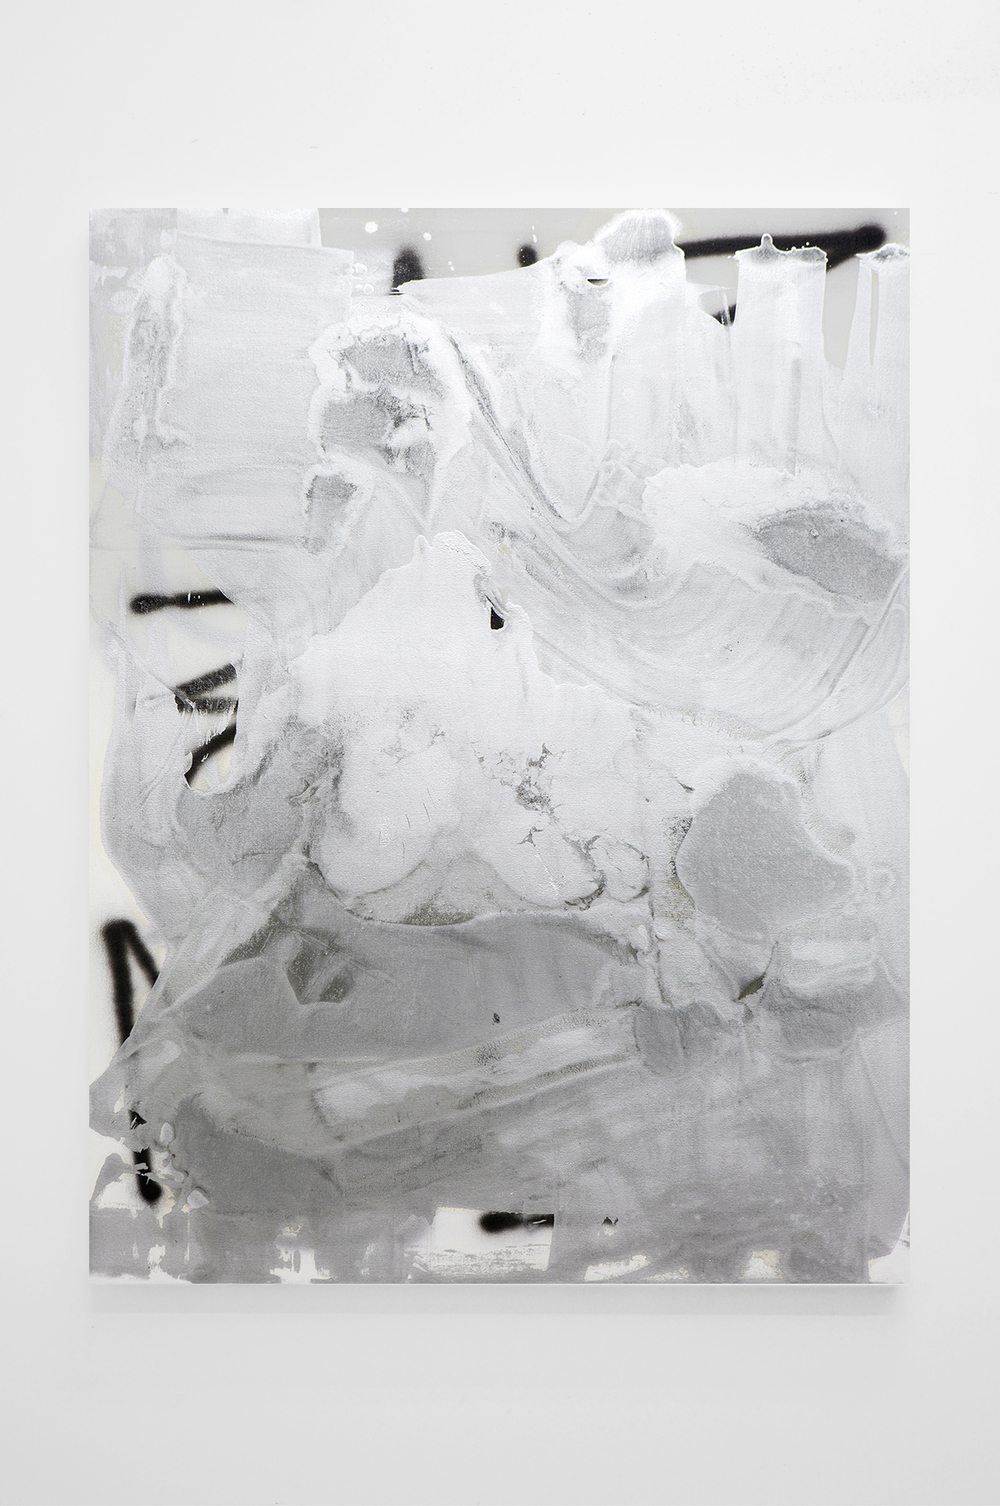 stefan bruggemann  puddle painting  aluminum paint, enamel on canvas  62 x 45 IN  2014